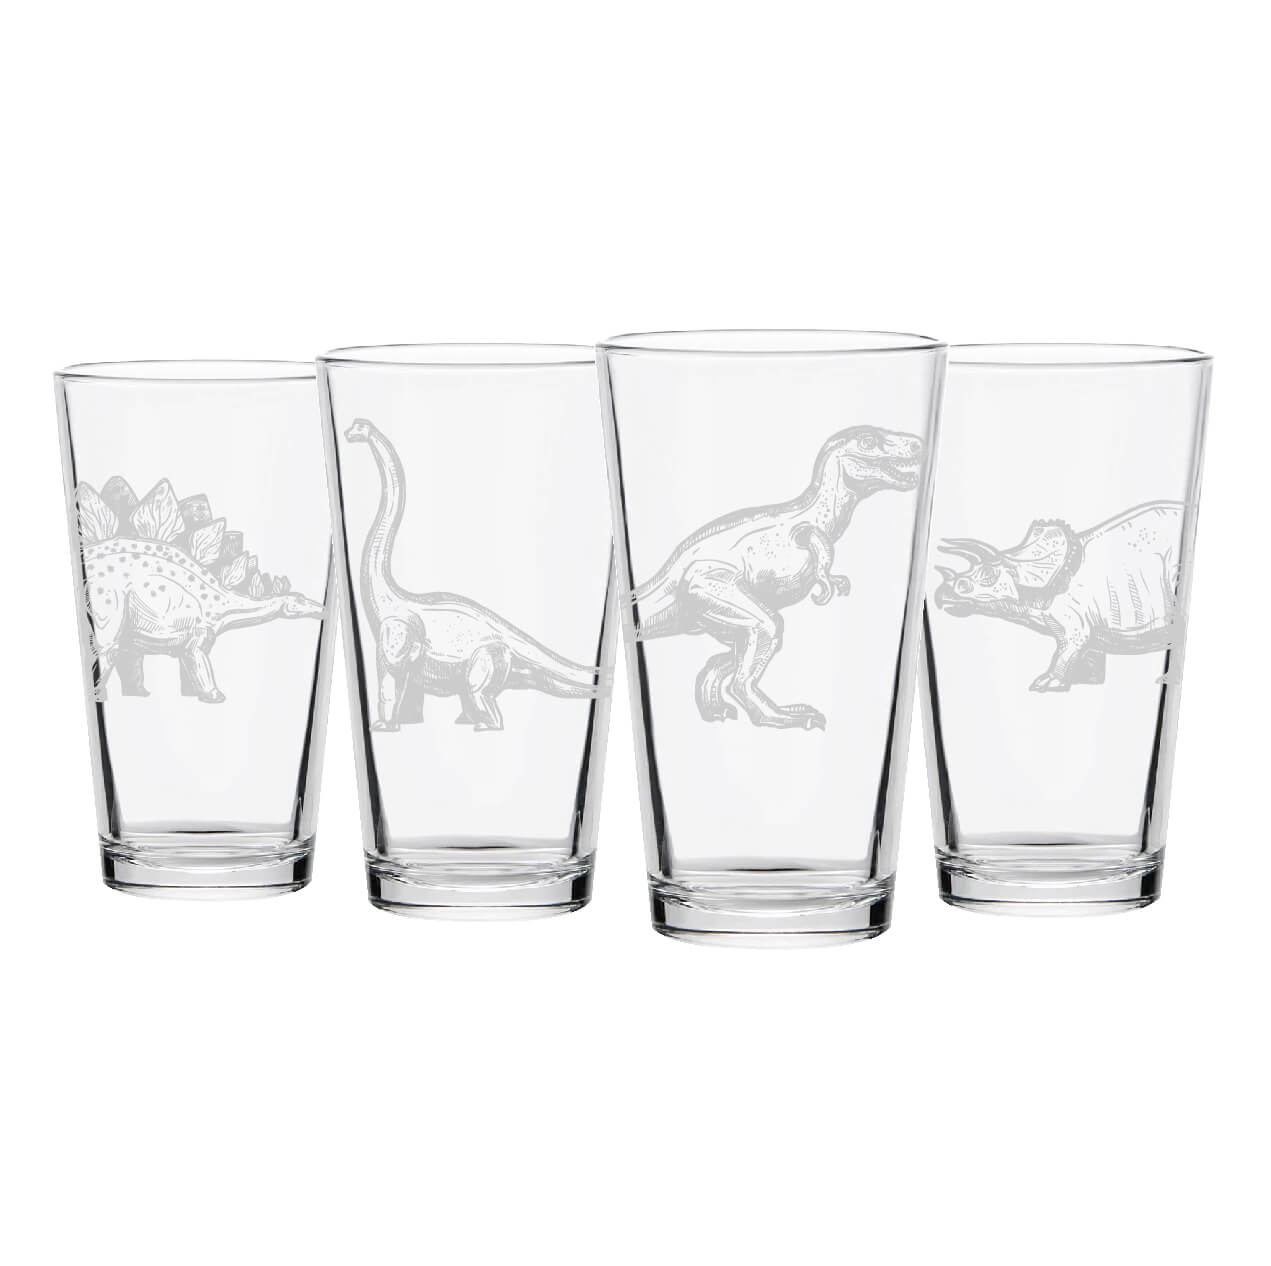 Dinosaur Pint Glasses- Set of 4